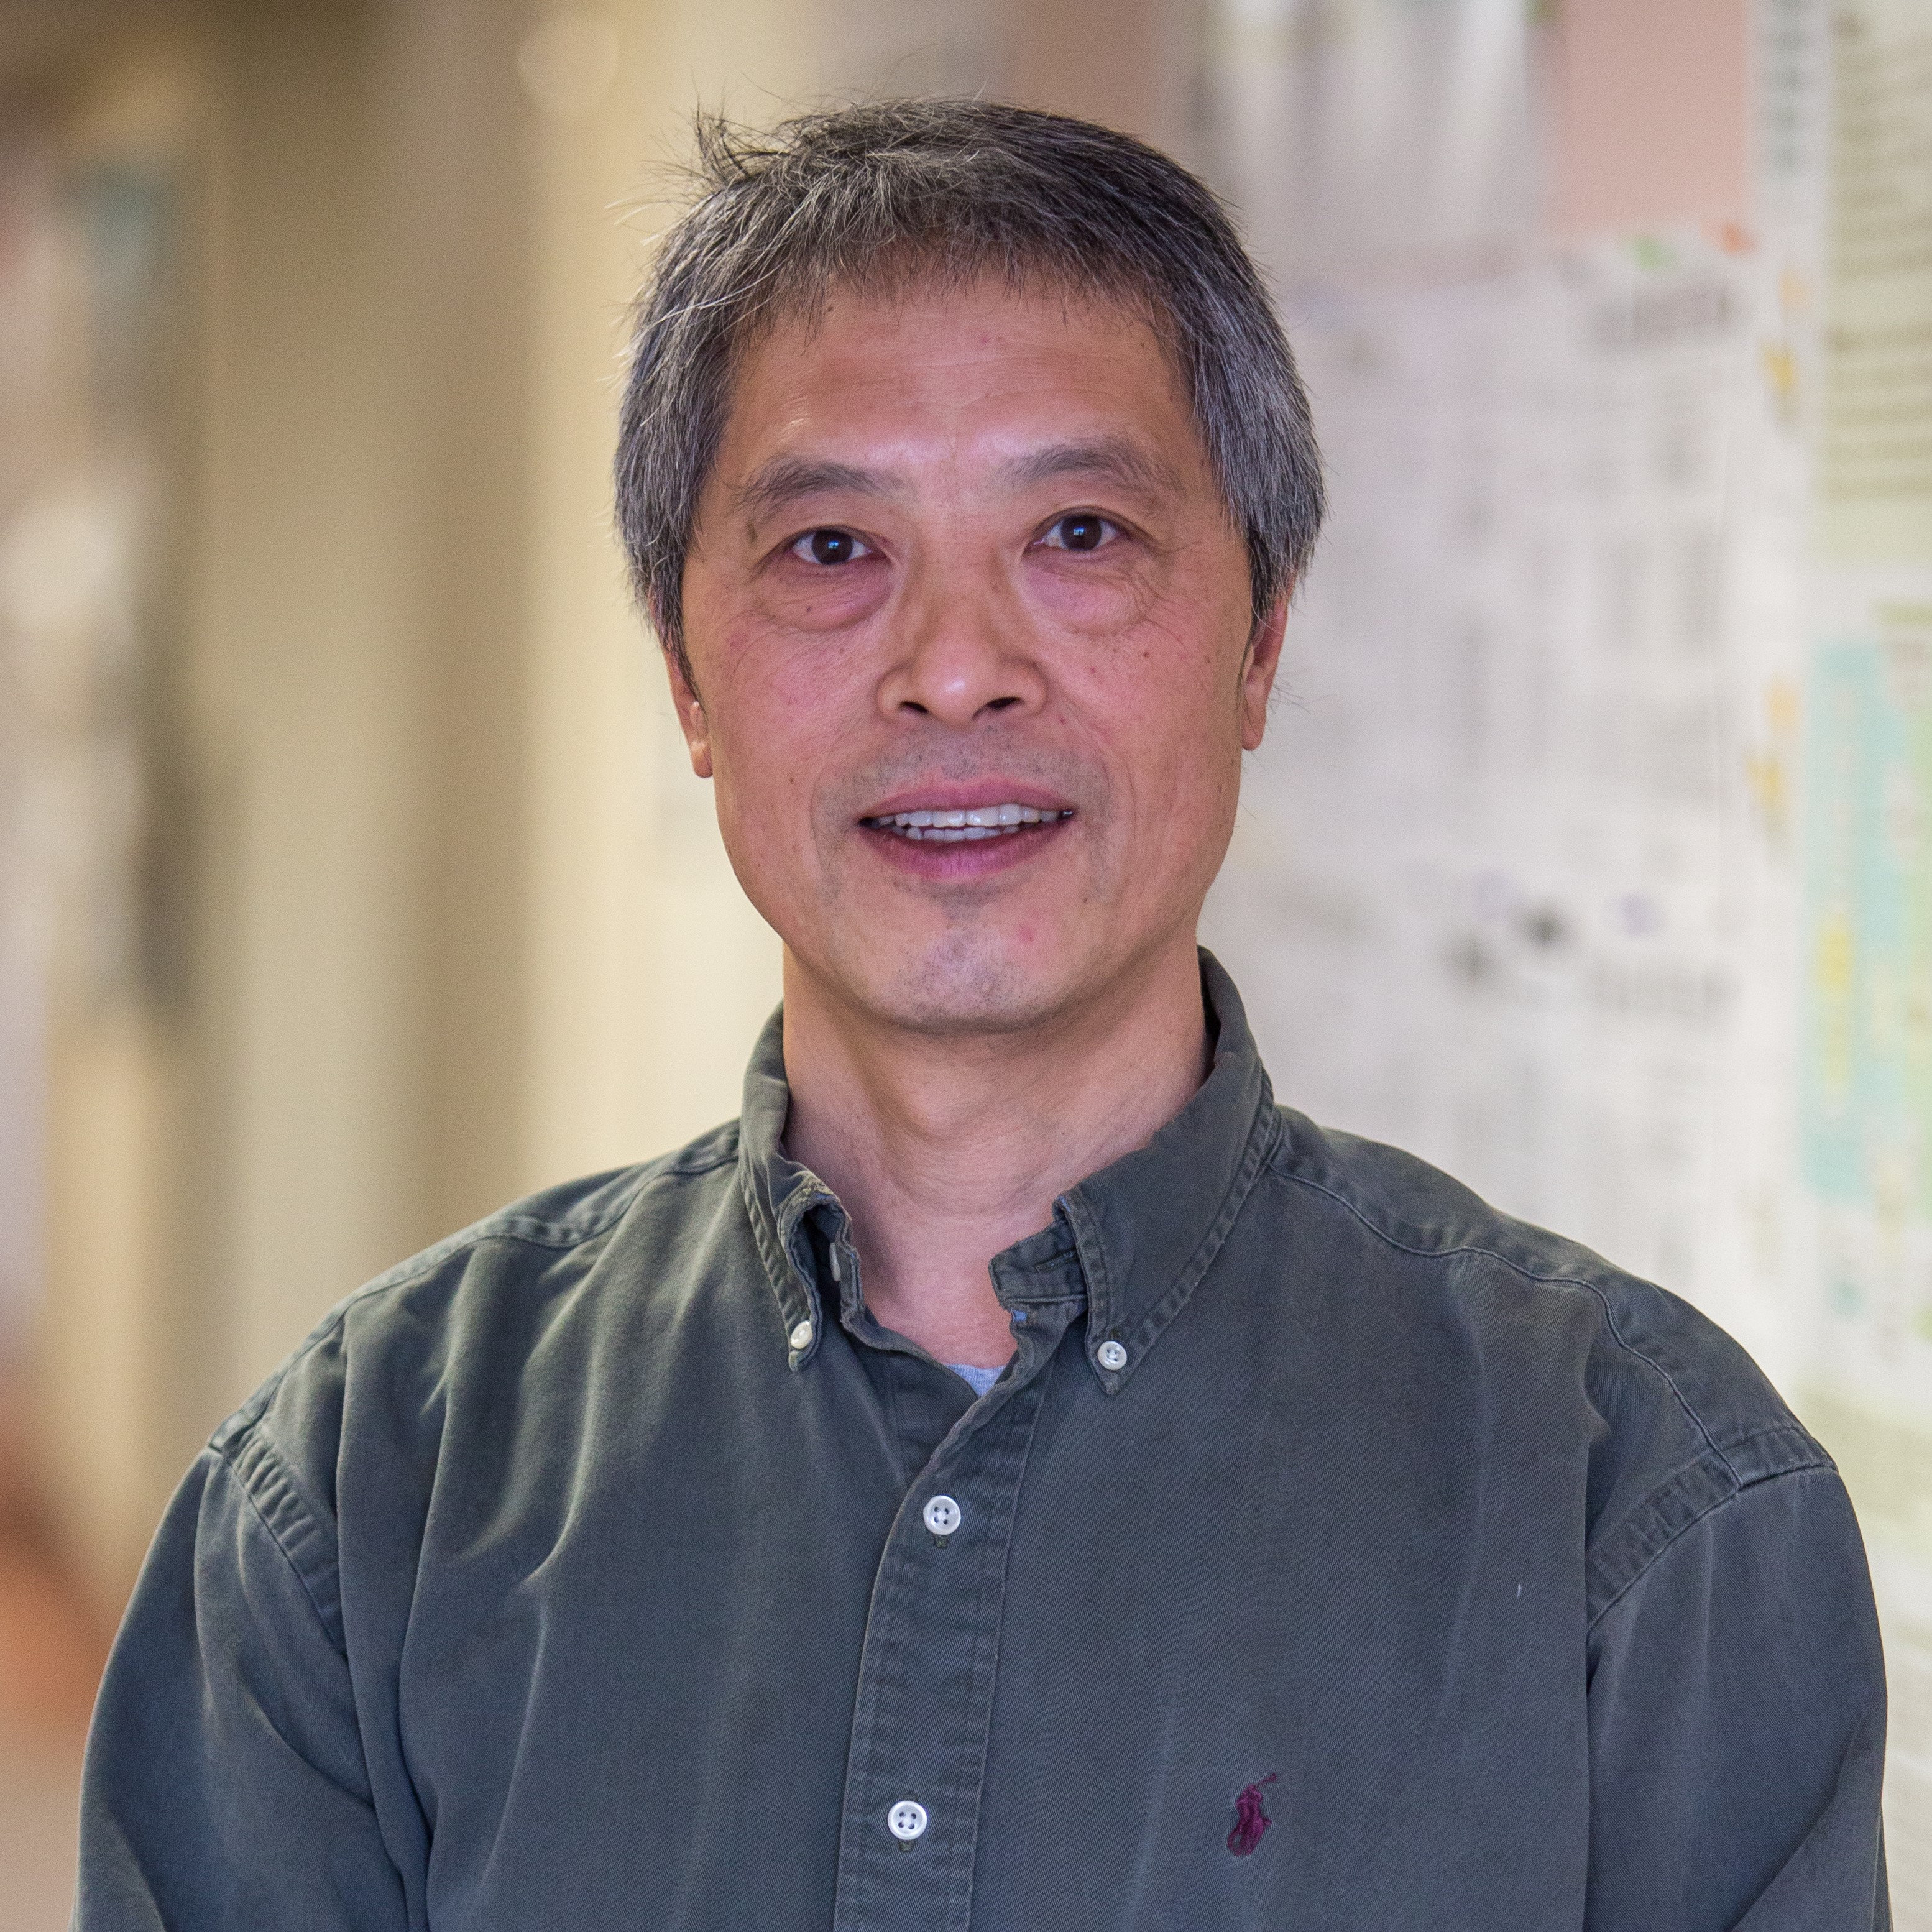 Congratulations to Jiquan Chen for being a recipient of the William J. Beal Outstanding Faculty Award